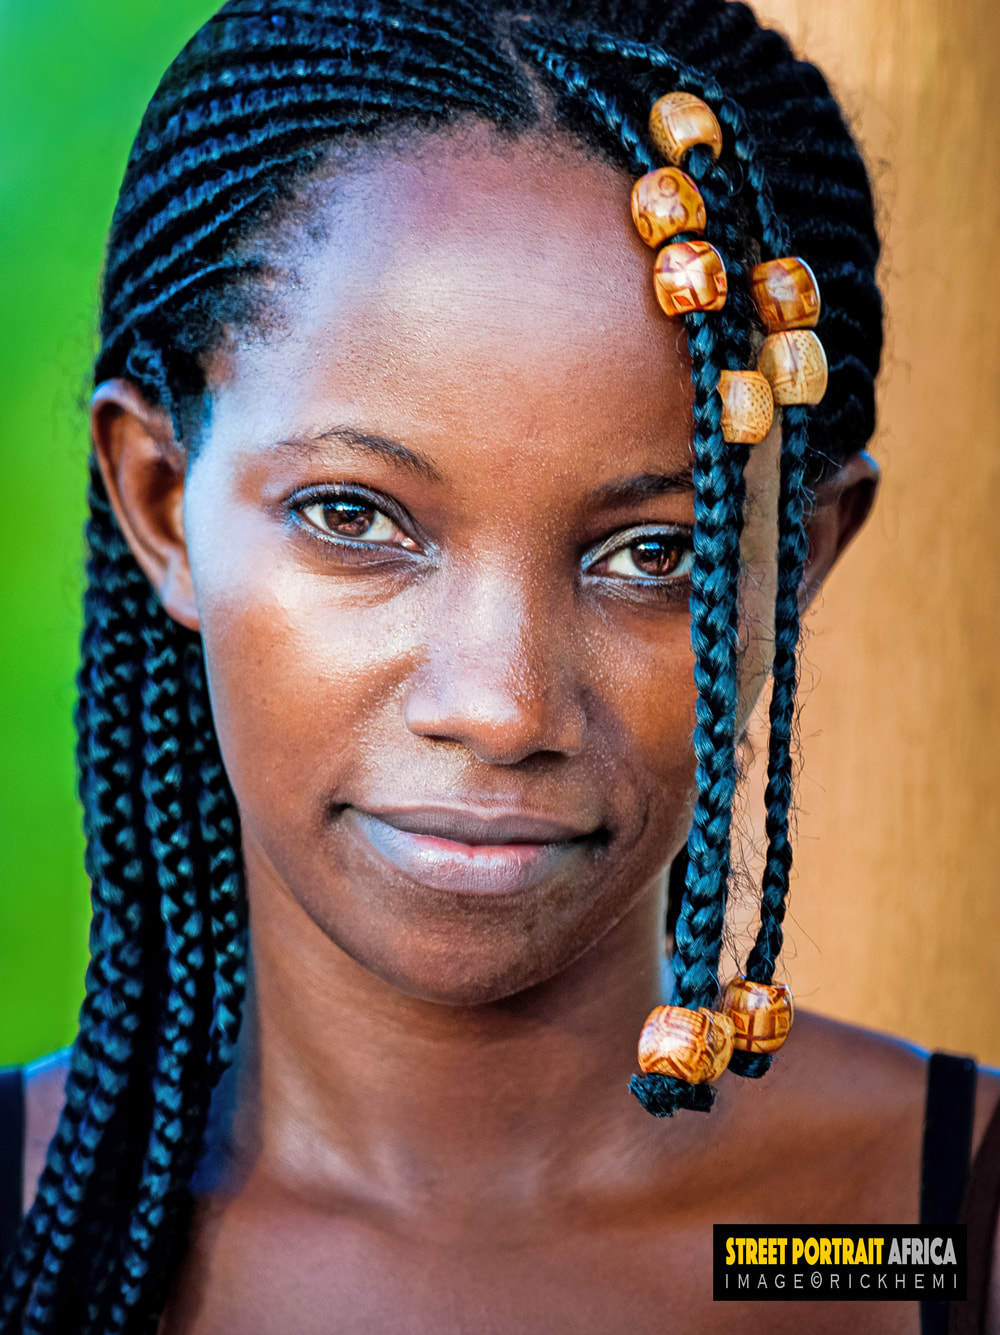 overland travel and transit Africa, street portrait, image by Rick Hemi